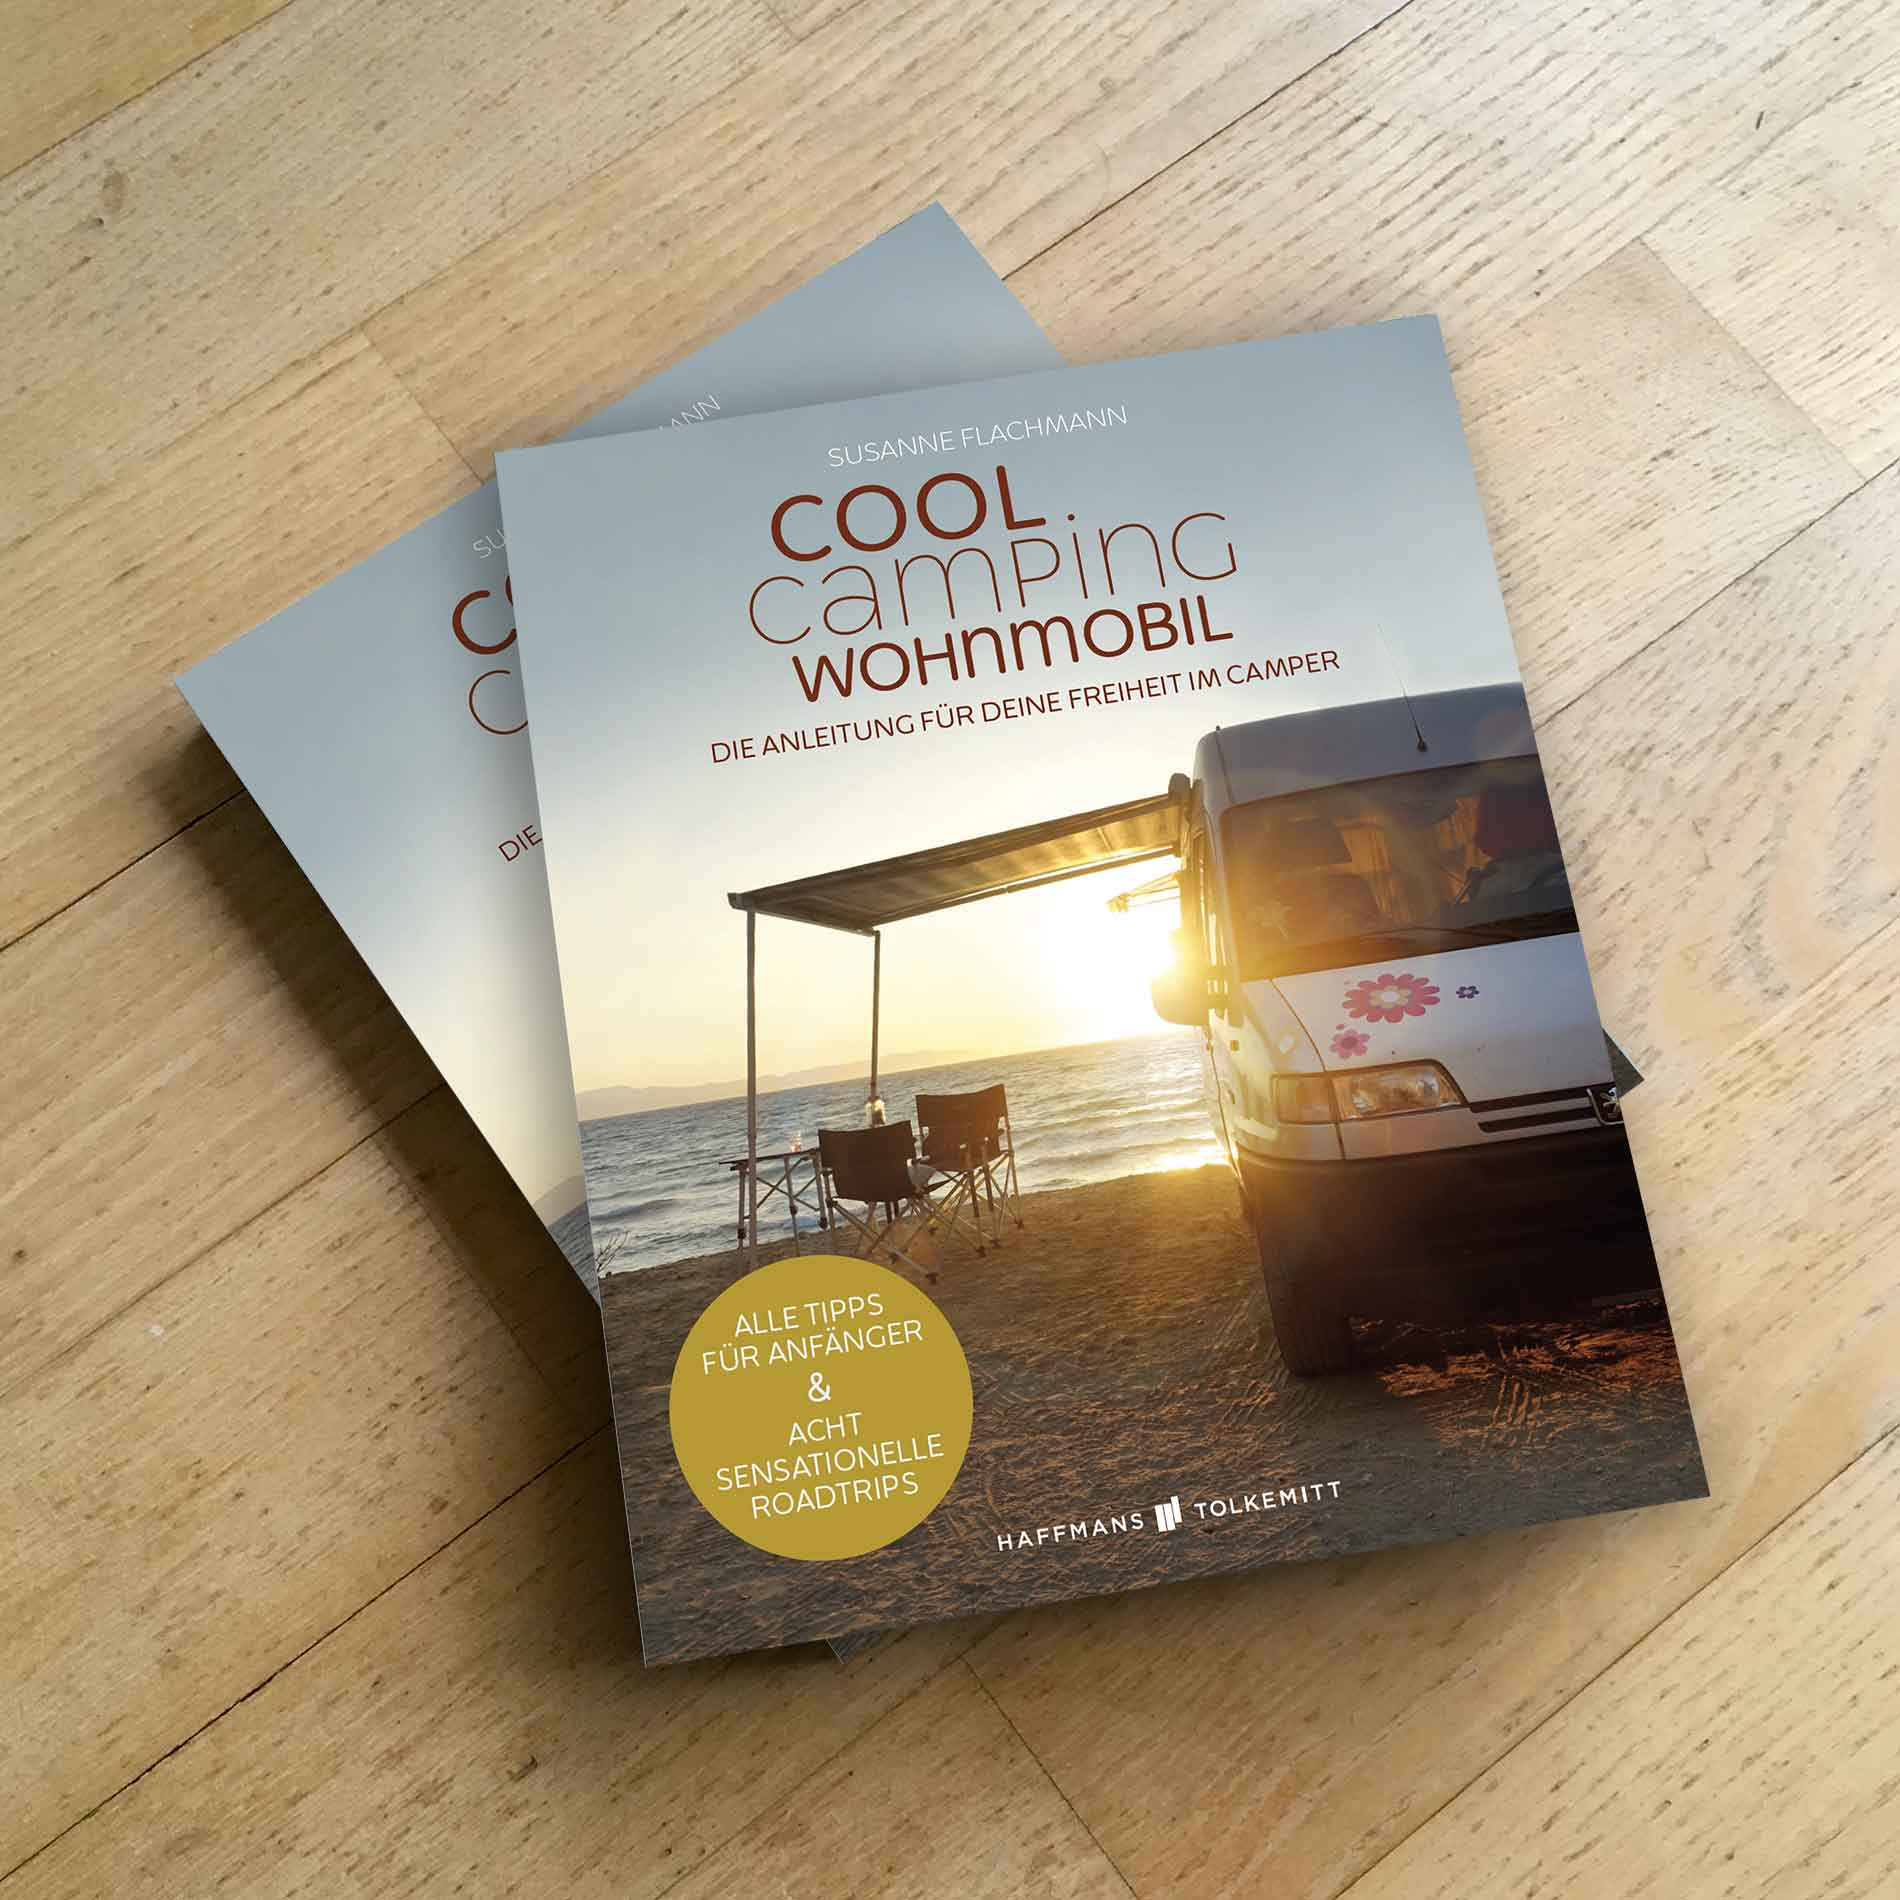 Cool-Camping-Wohnmobil_Buch_01